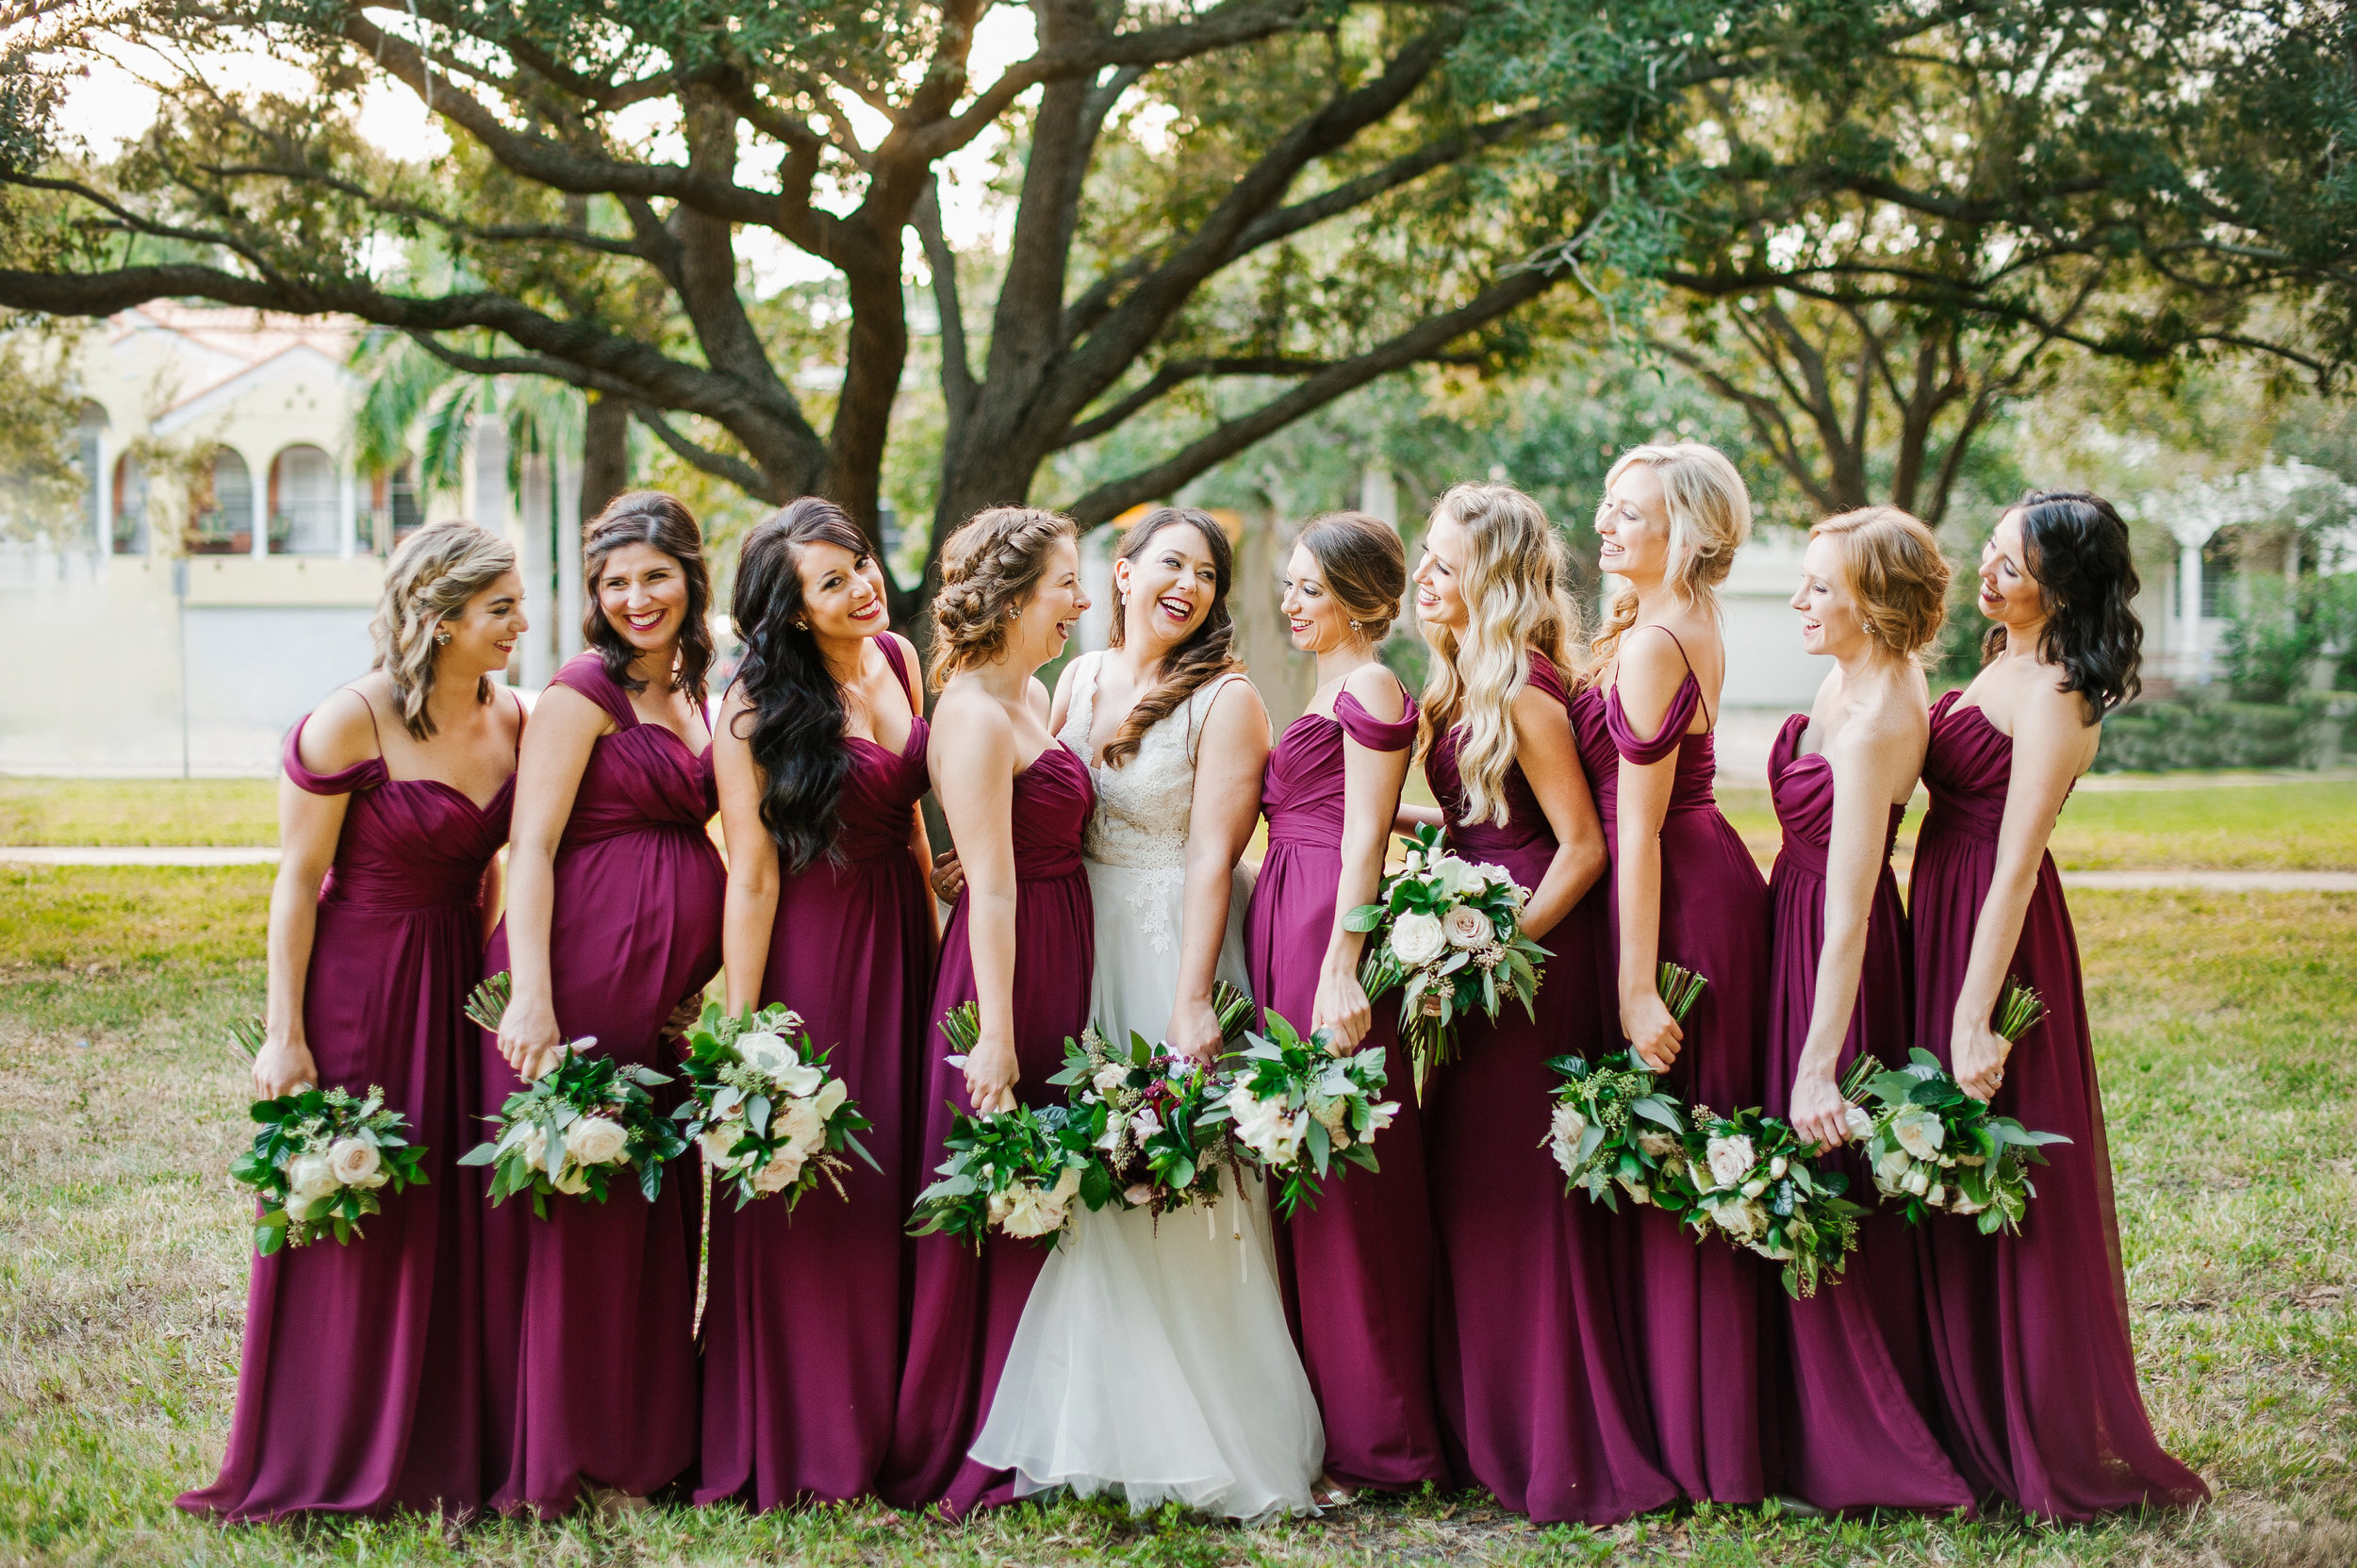 A gorgeous bunch of ladies in dark berry bridesmaid dresses, accented by they're bouquets with neutral blooms,dripping greenery, and marsala amaranthus.